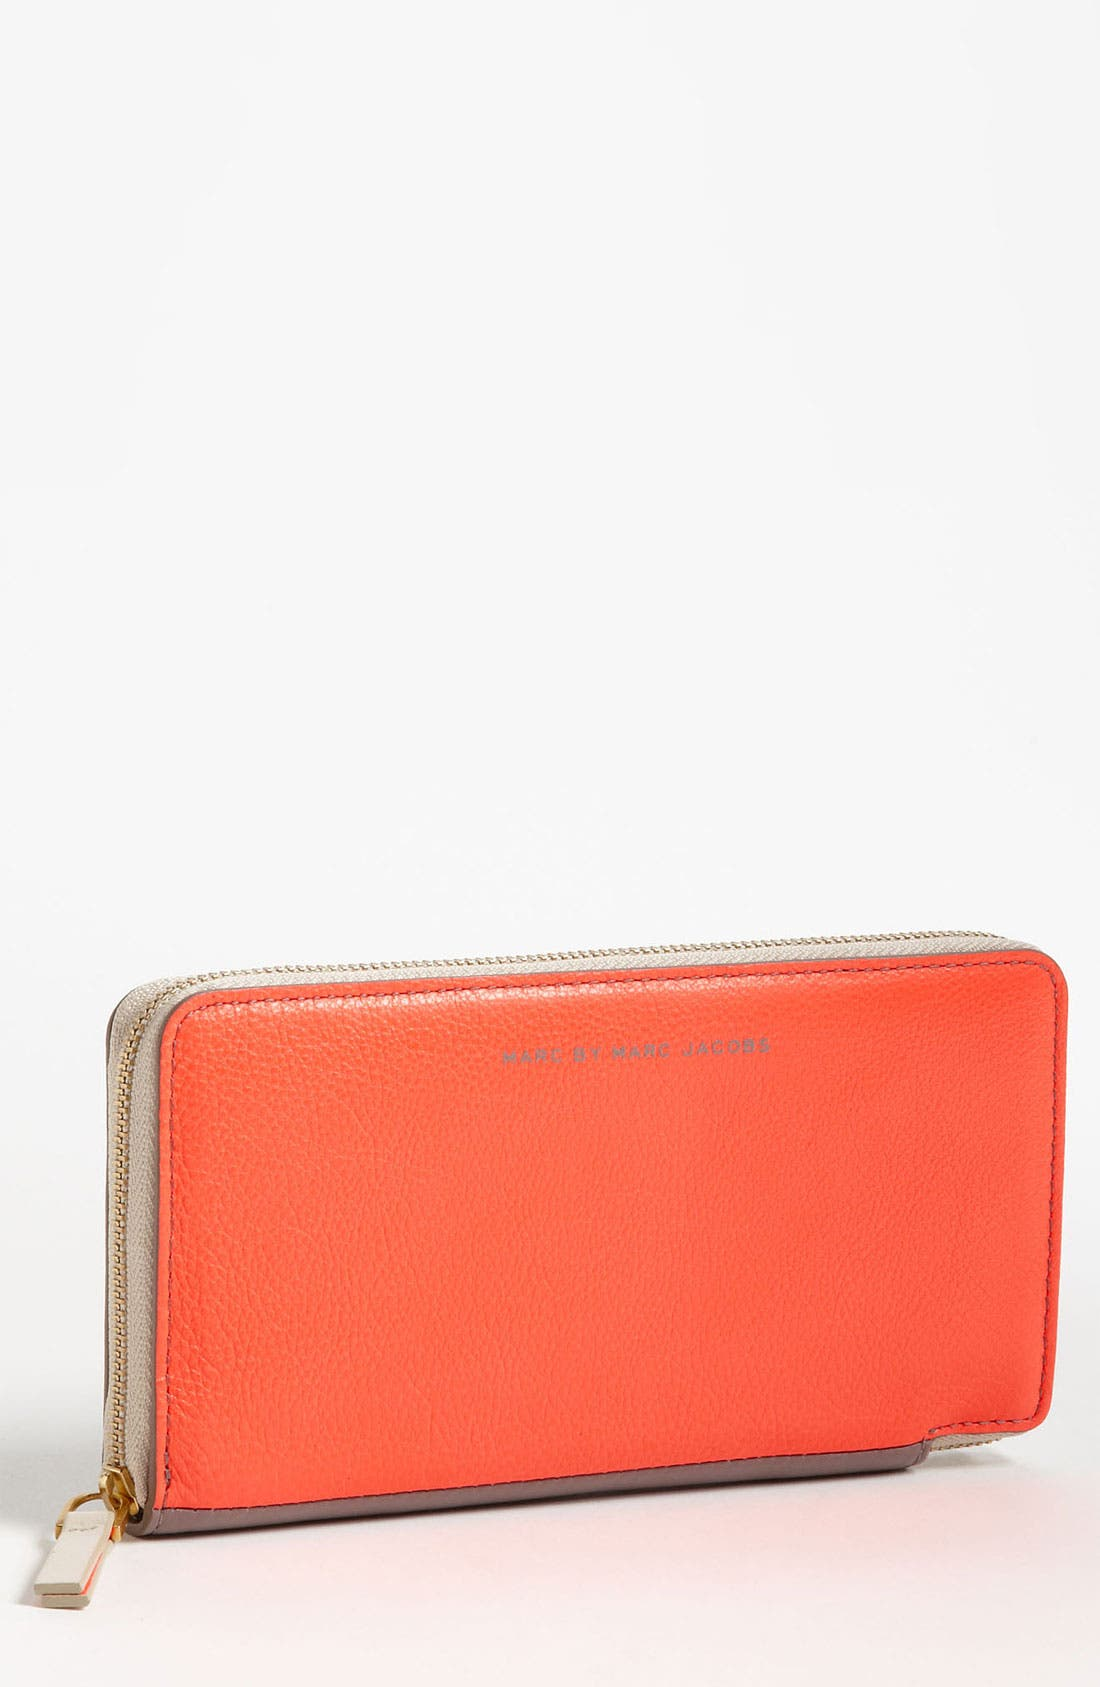 Main Image - MARC BY MARC JACOBS 'Sophisticato' Wallet